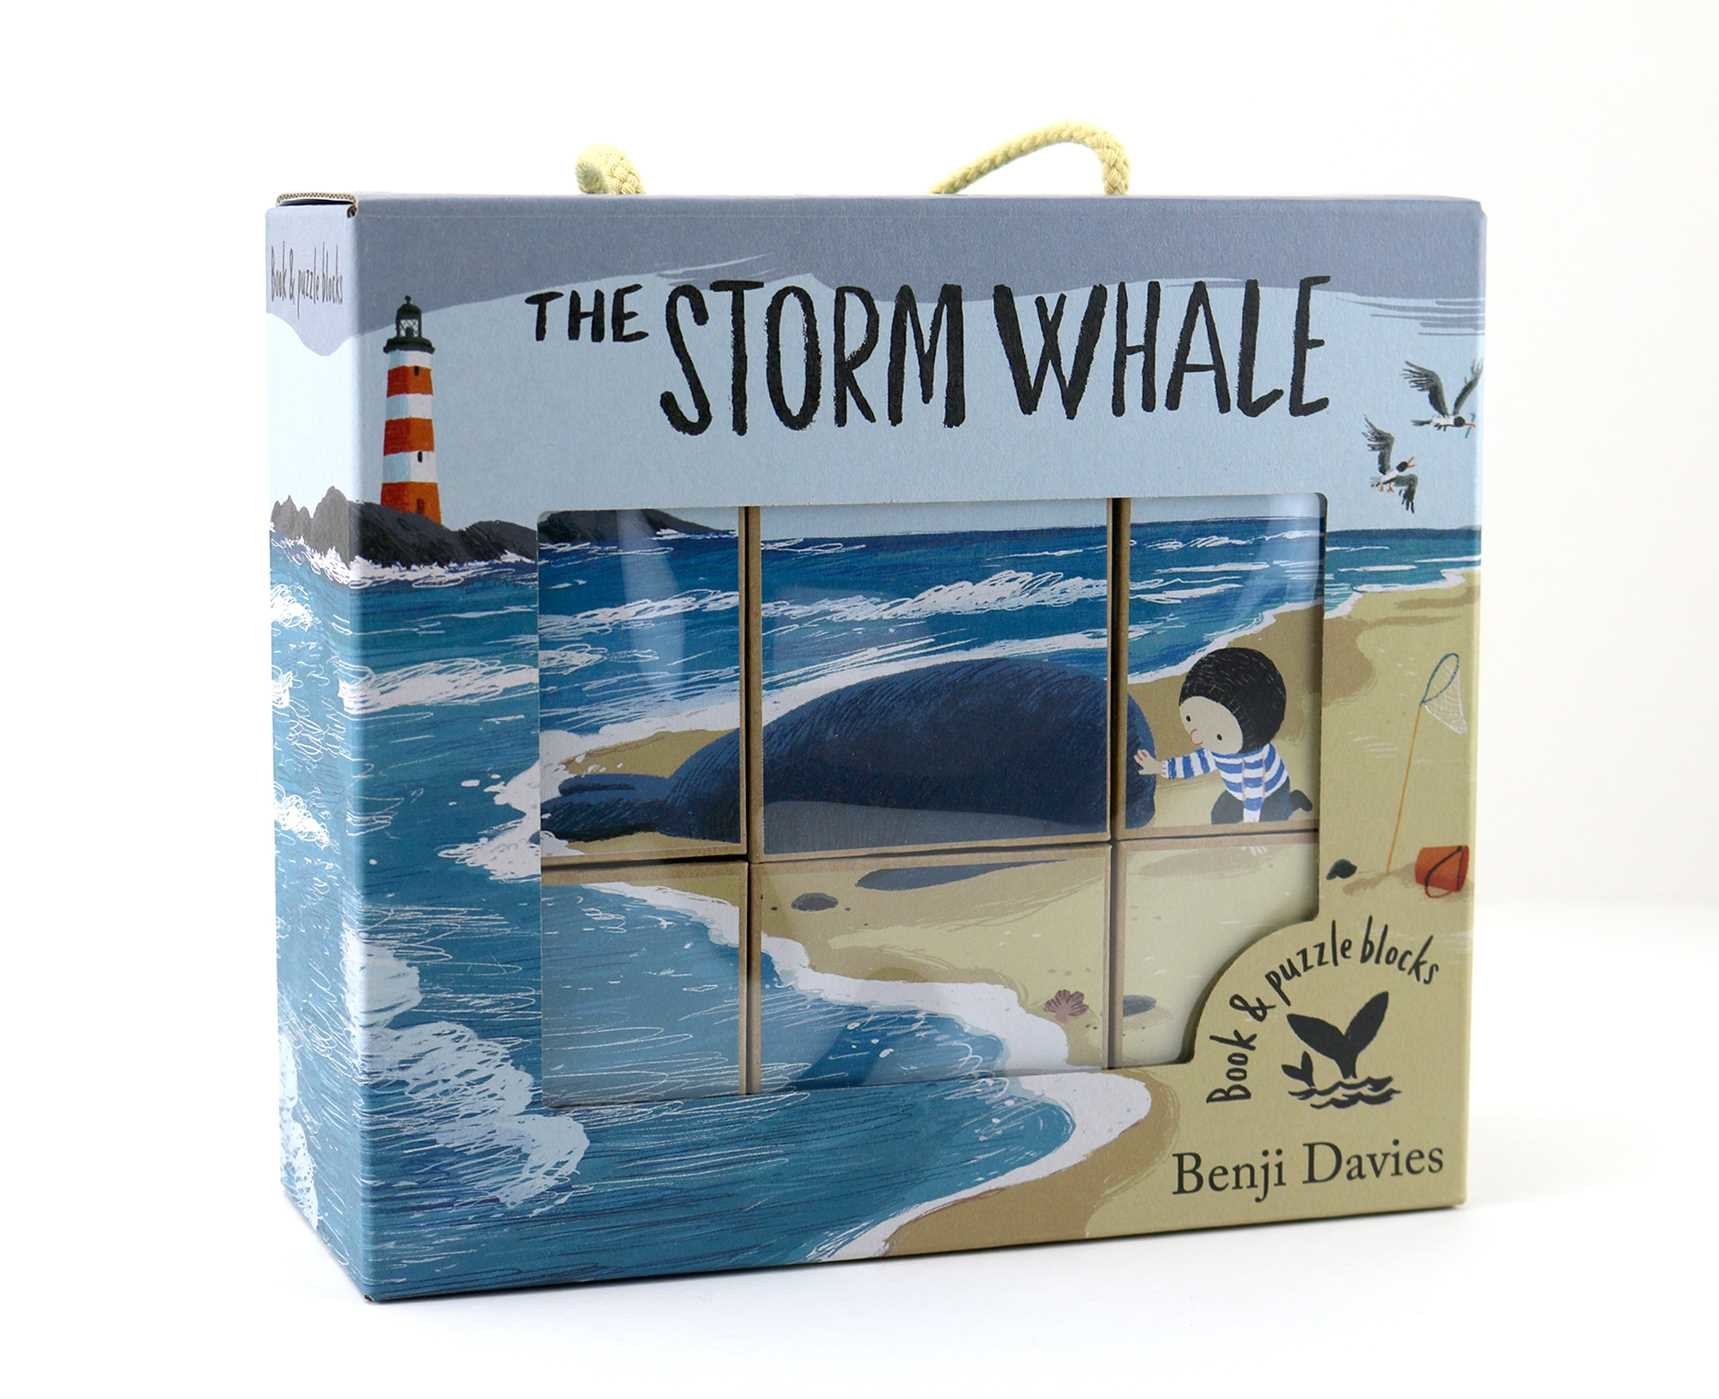 Storm whale book and puzzle 9781471168000.in01